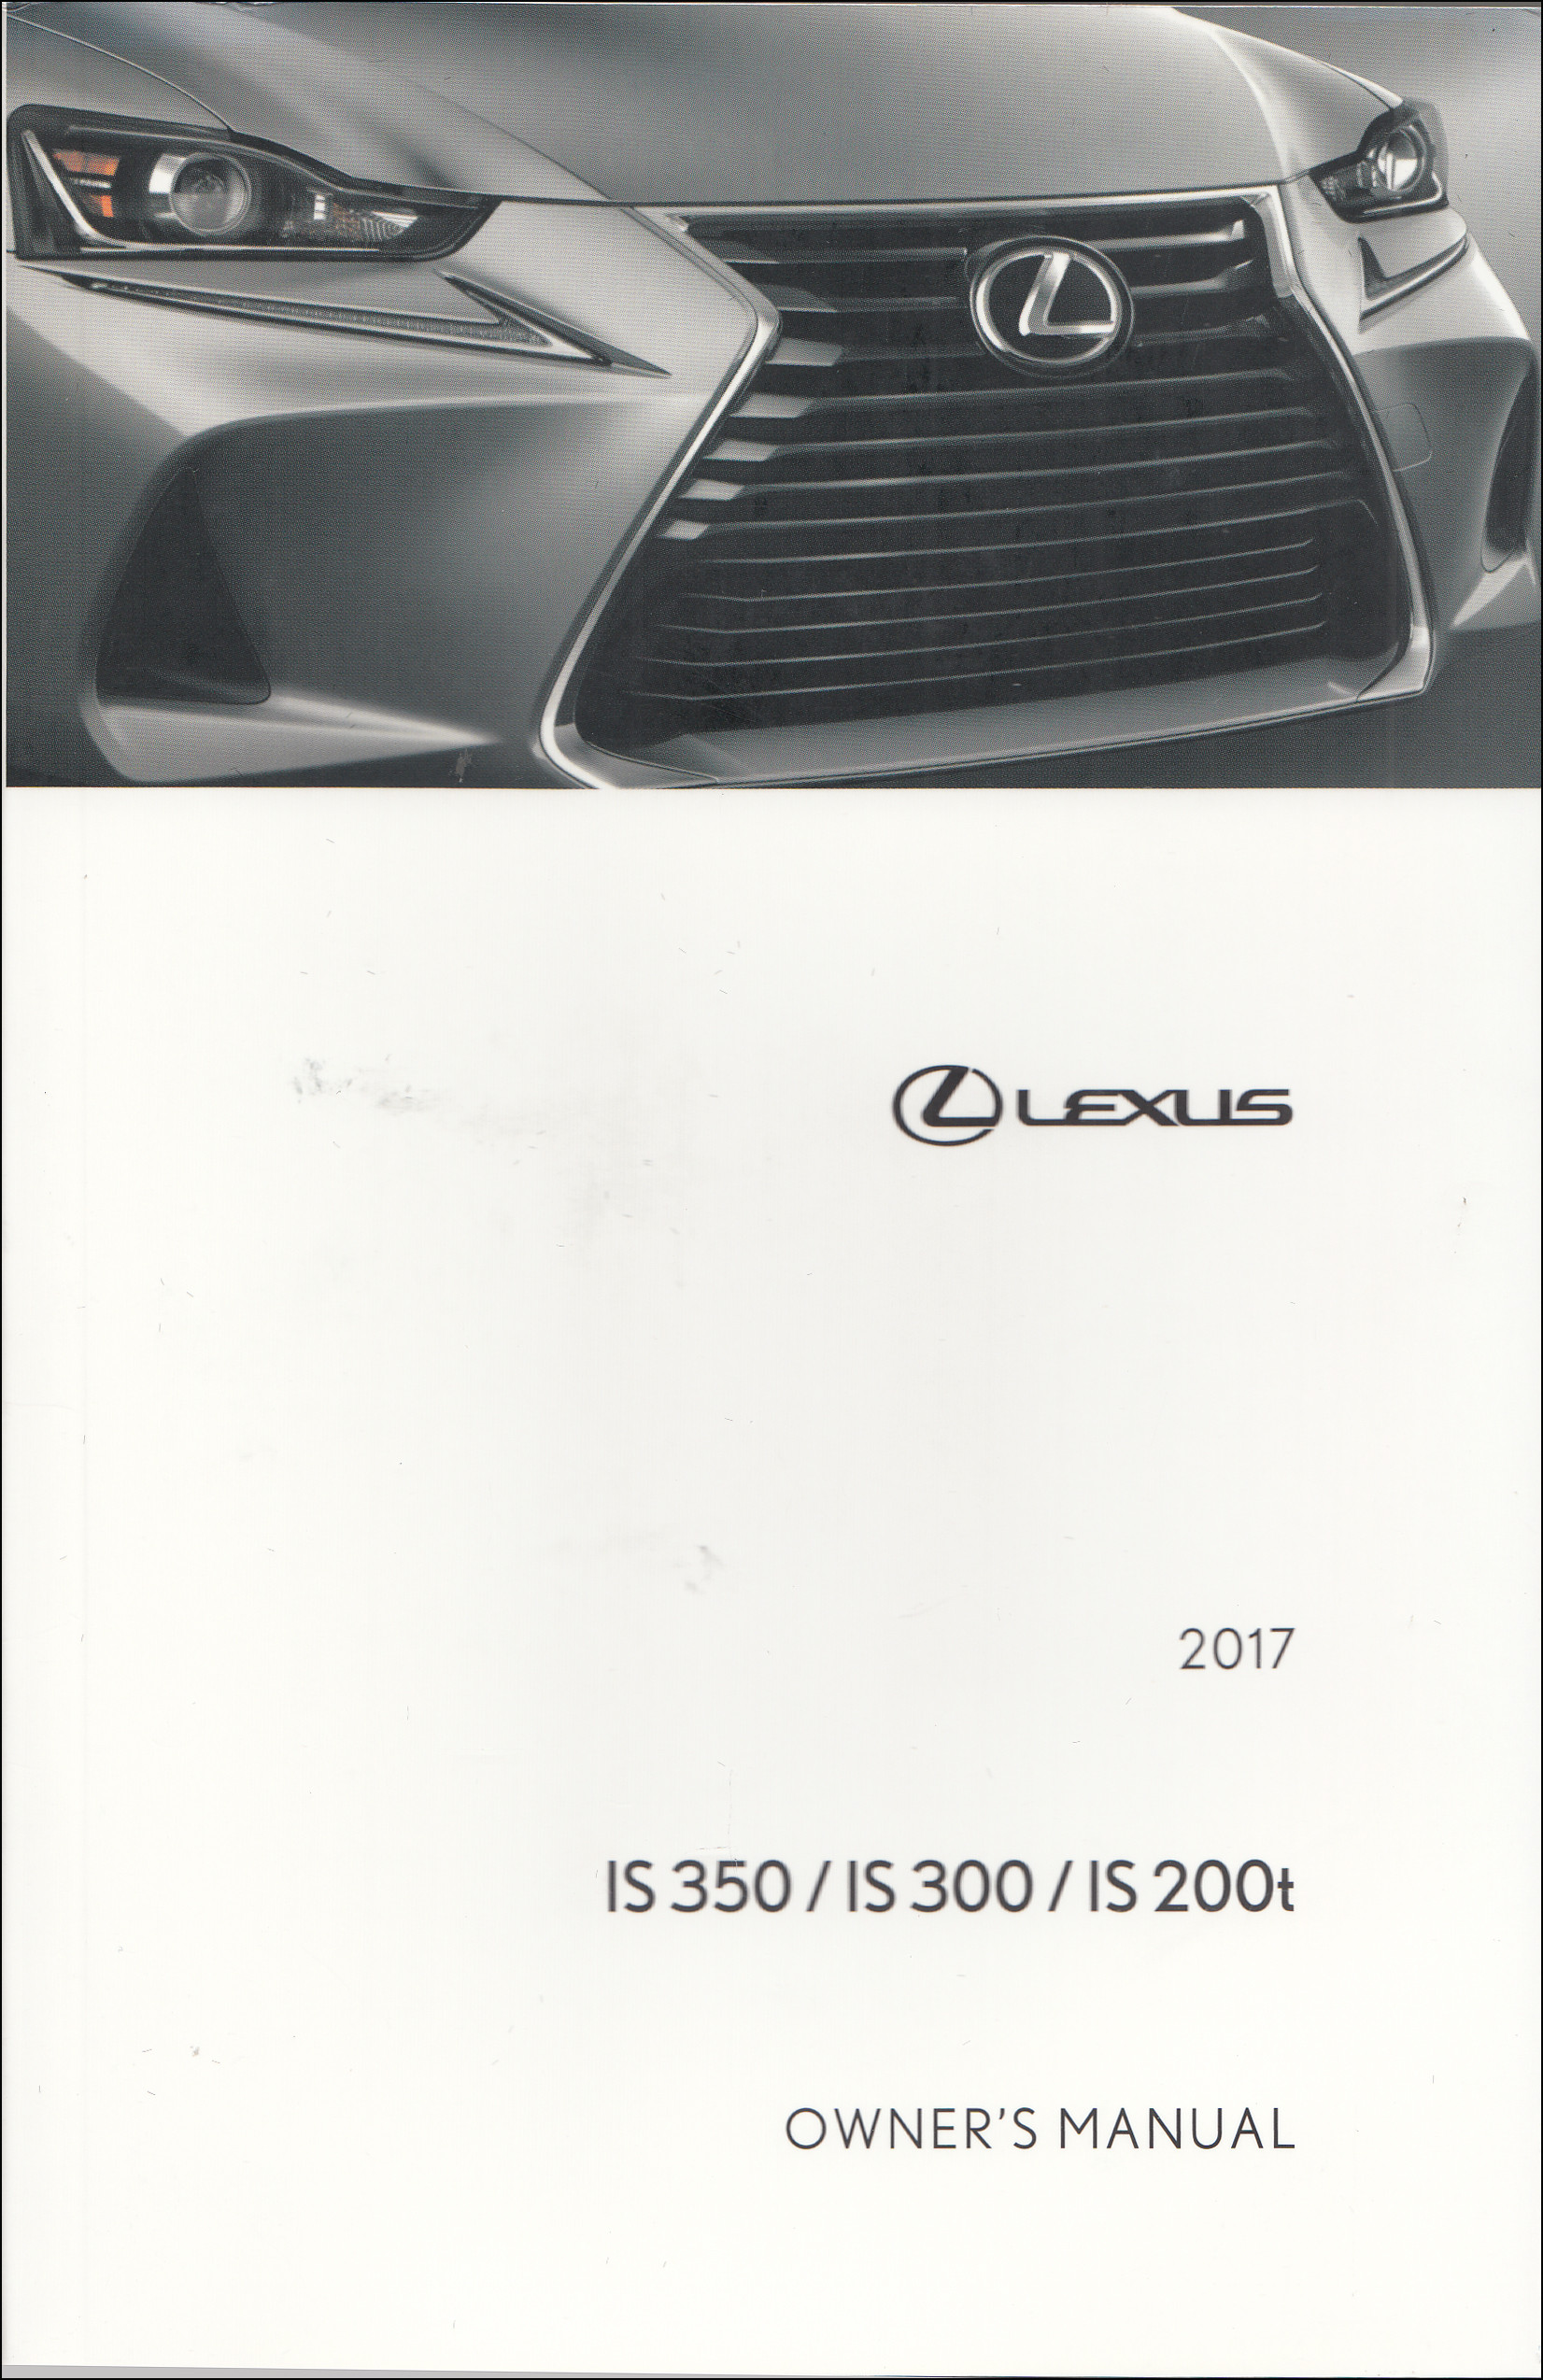 2017 Lexus IS Owner's Manual Original 200t/300/350